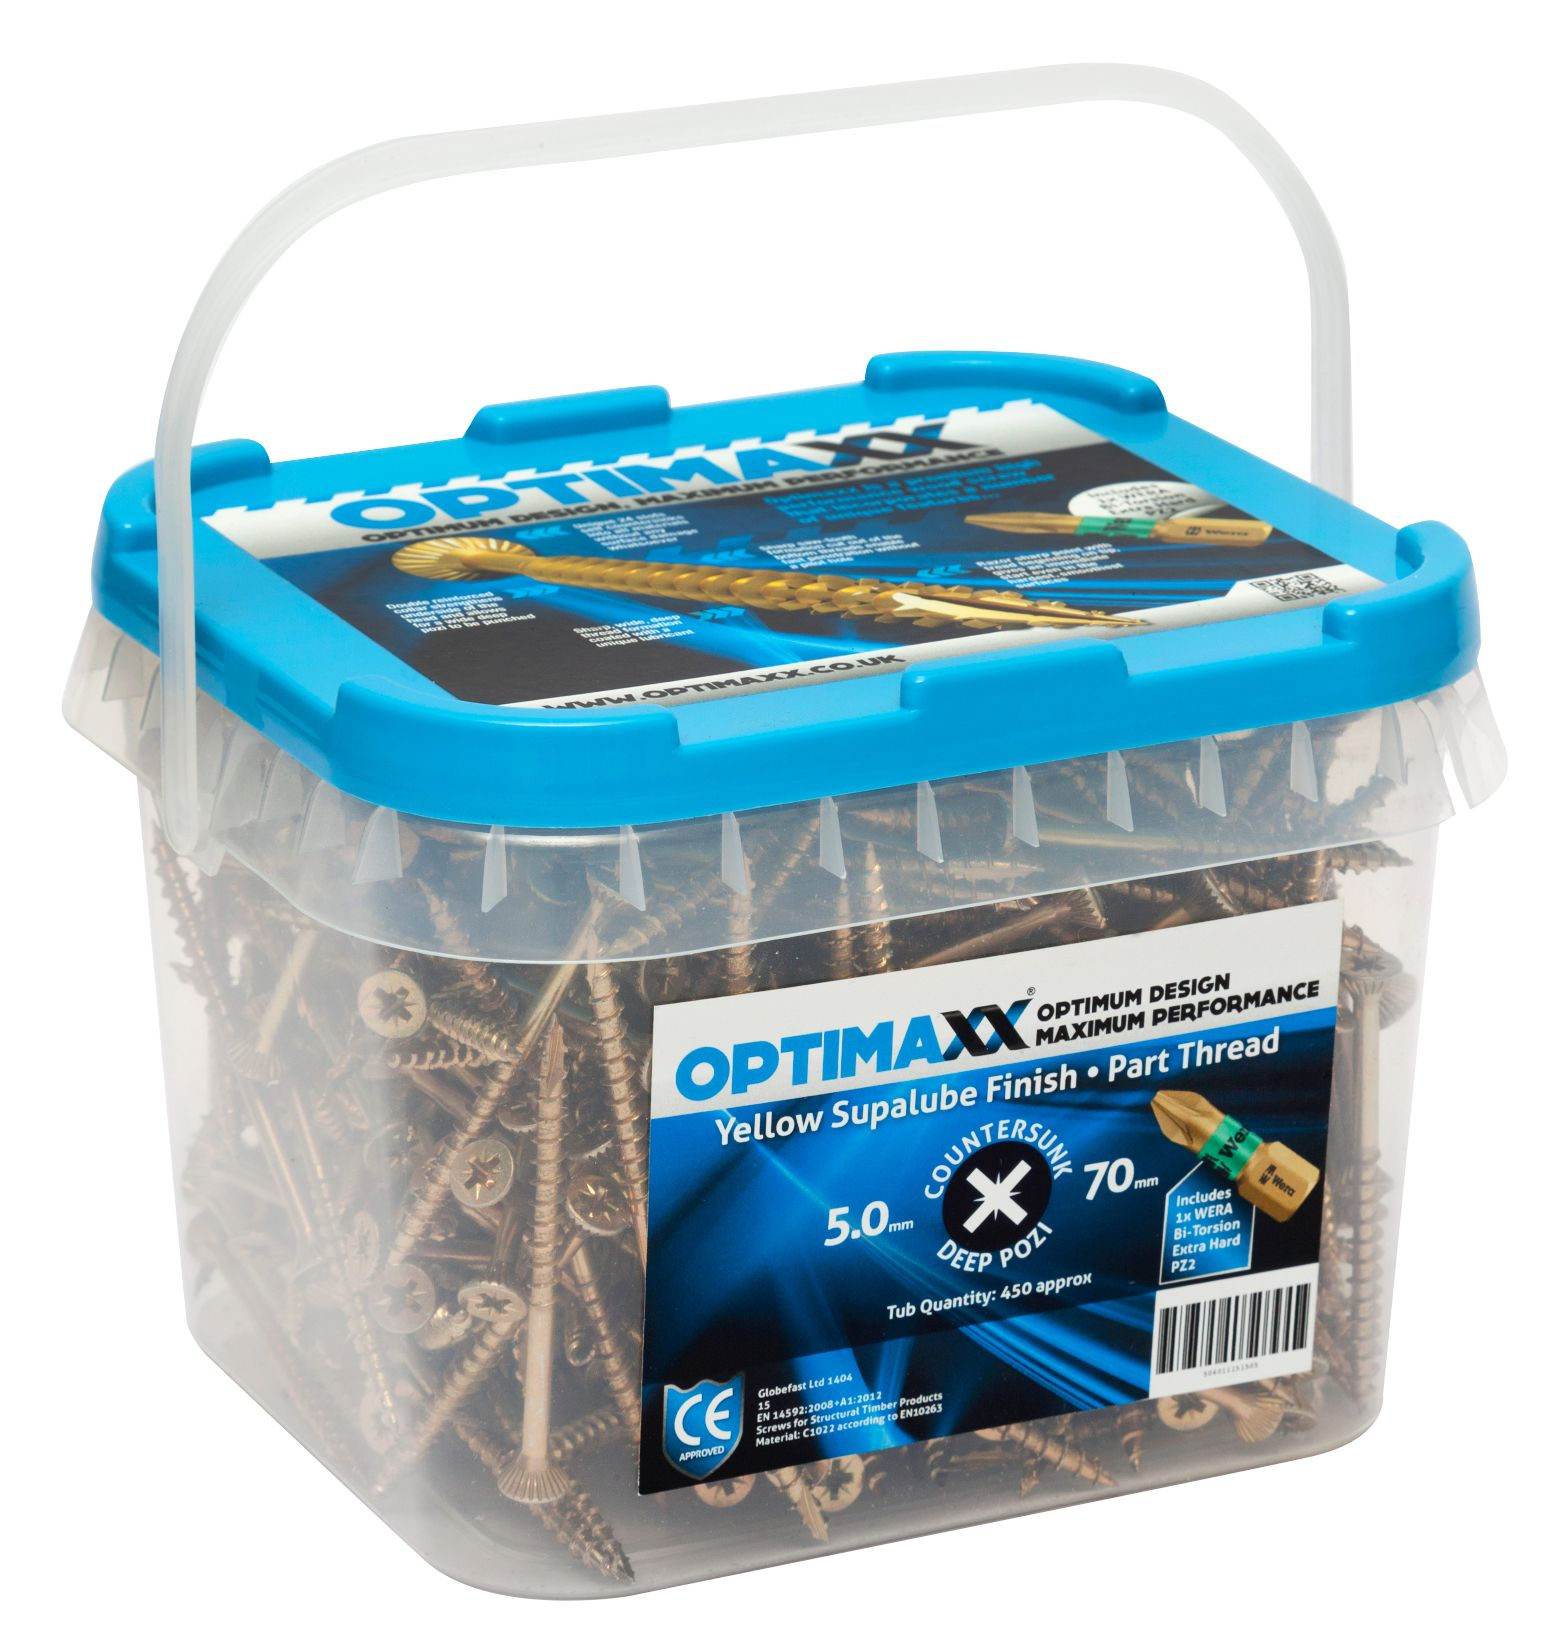 OPTIMAXX PERFORMANCE WOODSCREW MAXXTUB 5.0 X 100 (275PCS) + WERA PZ2 BIT